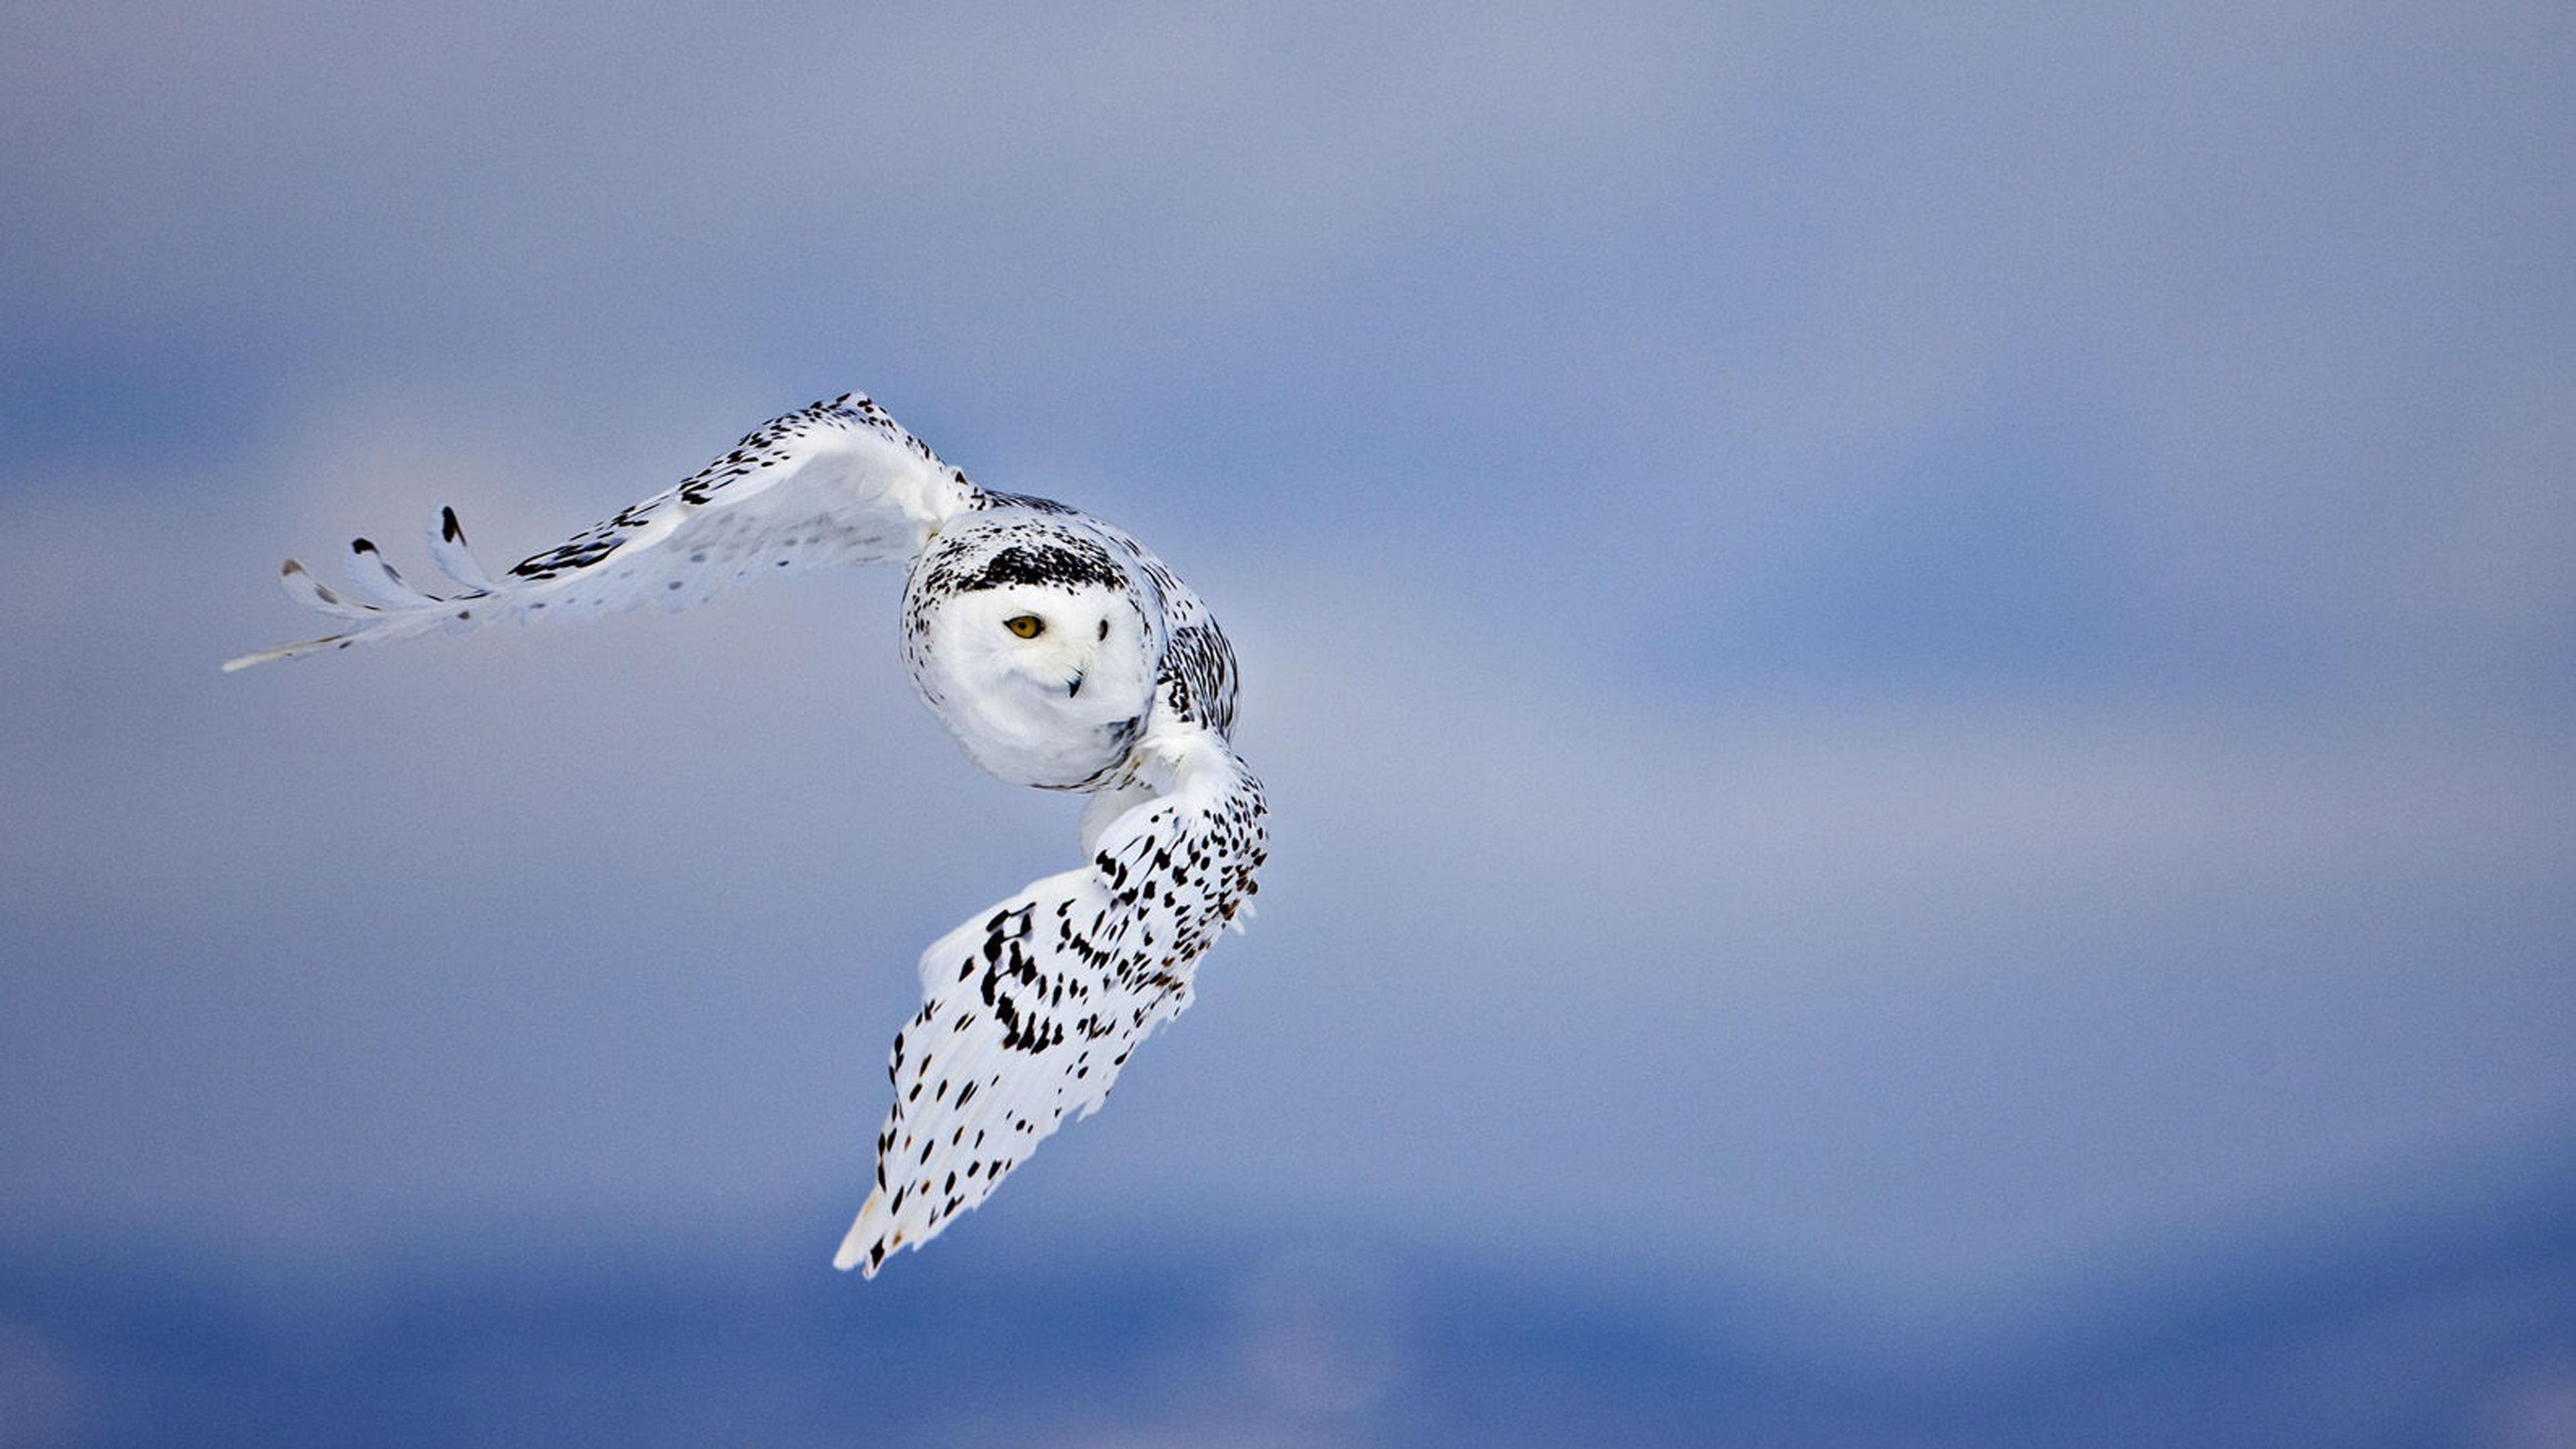 owl-wallpapers-hd-free-download-desktop | wallpaper.wiki